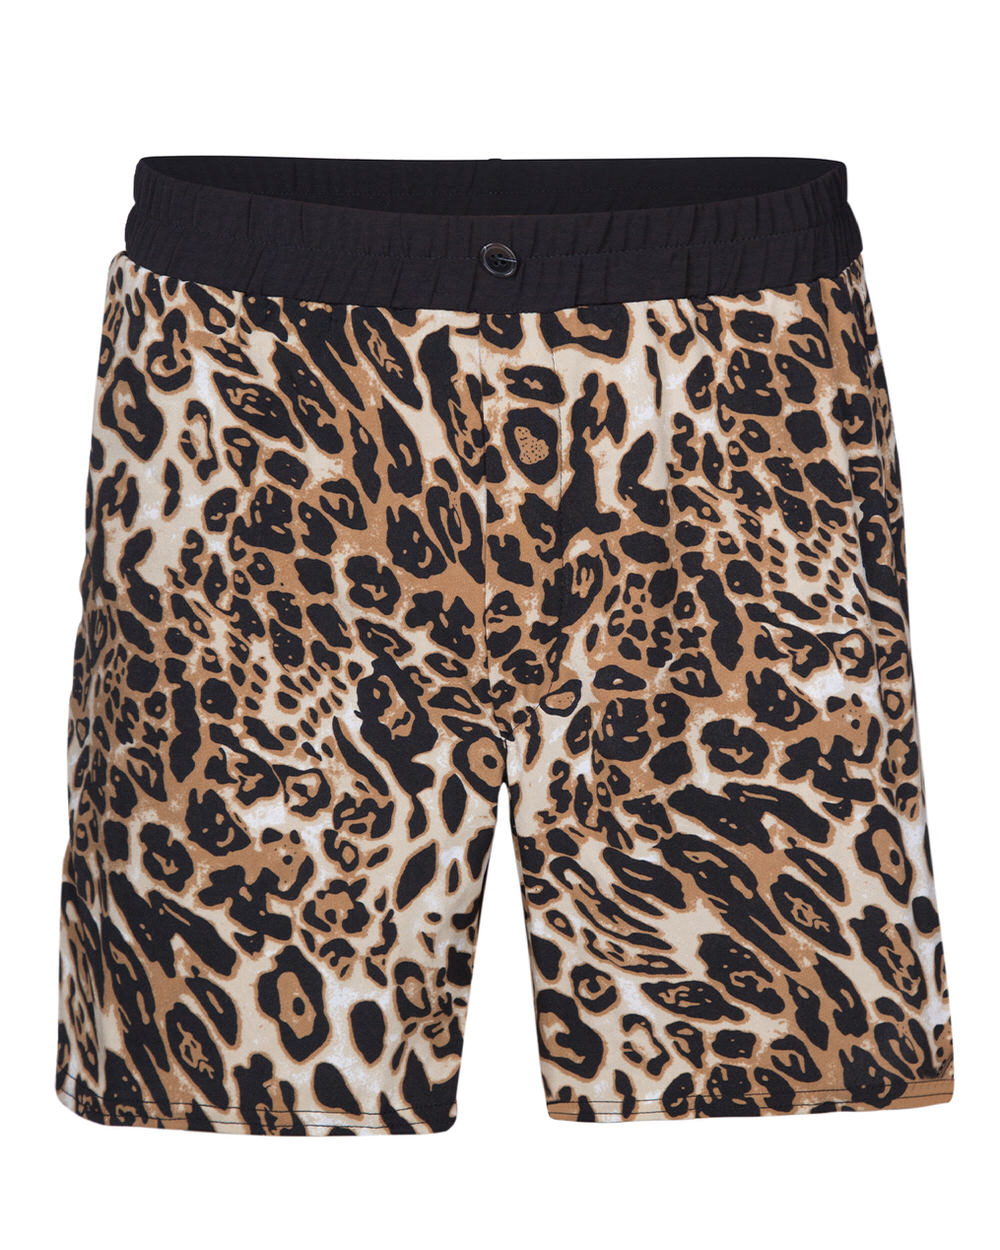 Safari Shorts - Leopard